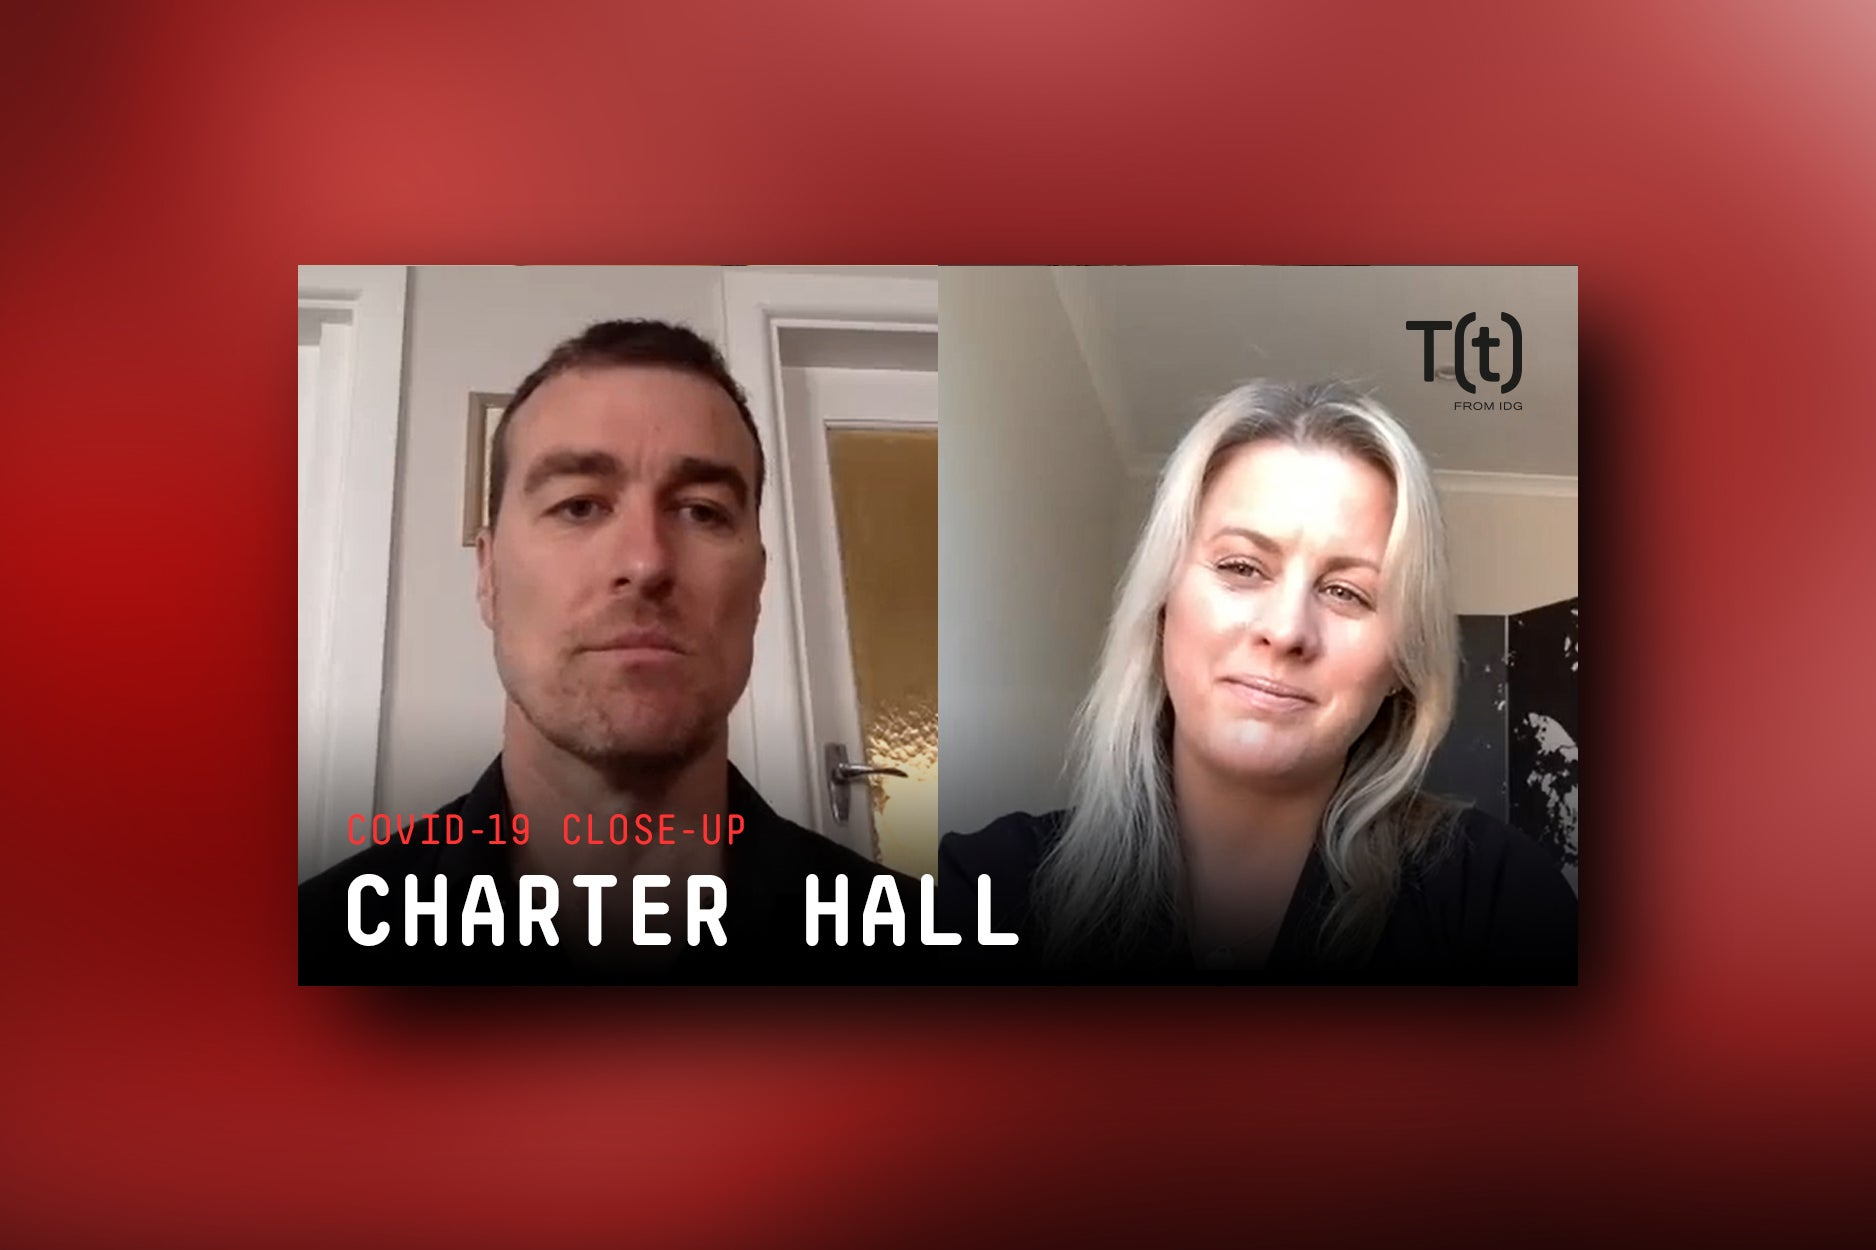 Covid19 Series: Interview with Charter Hall